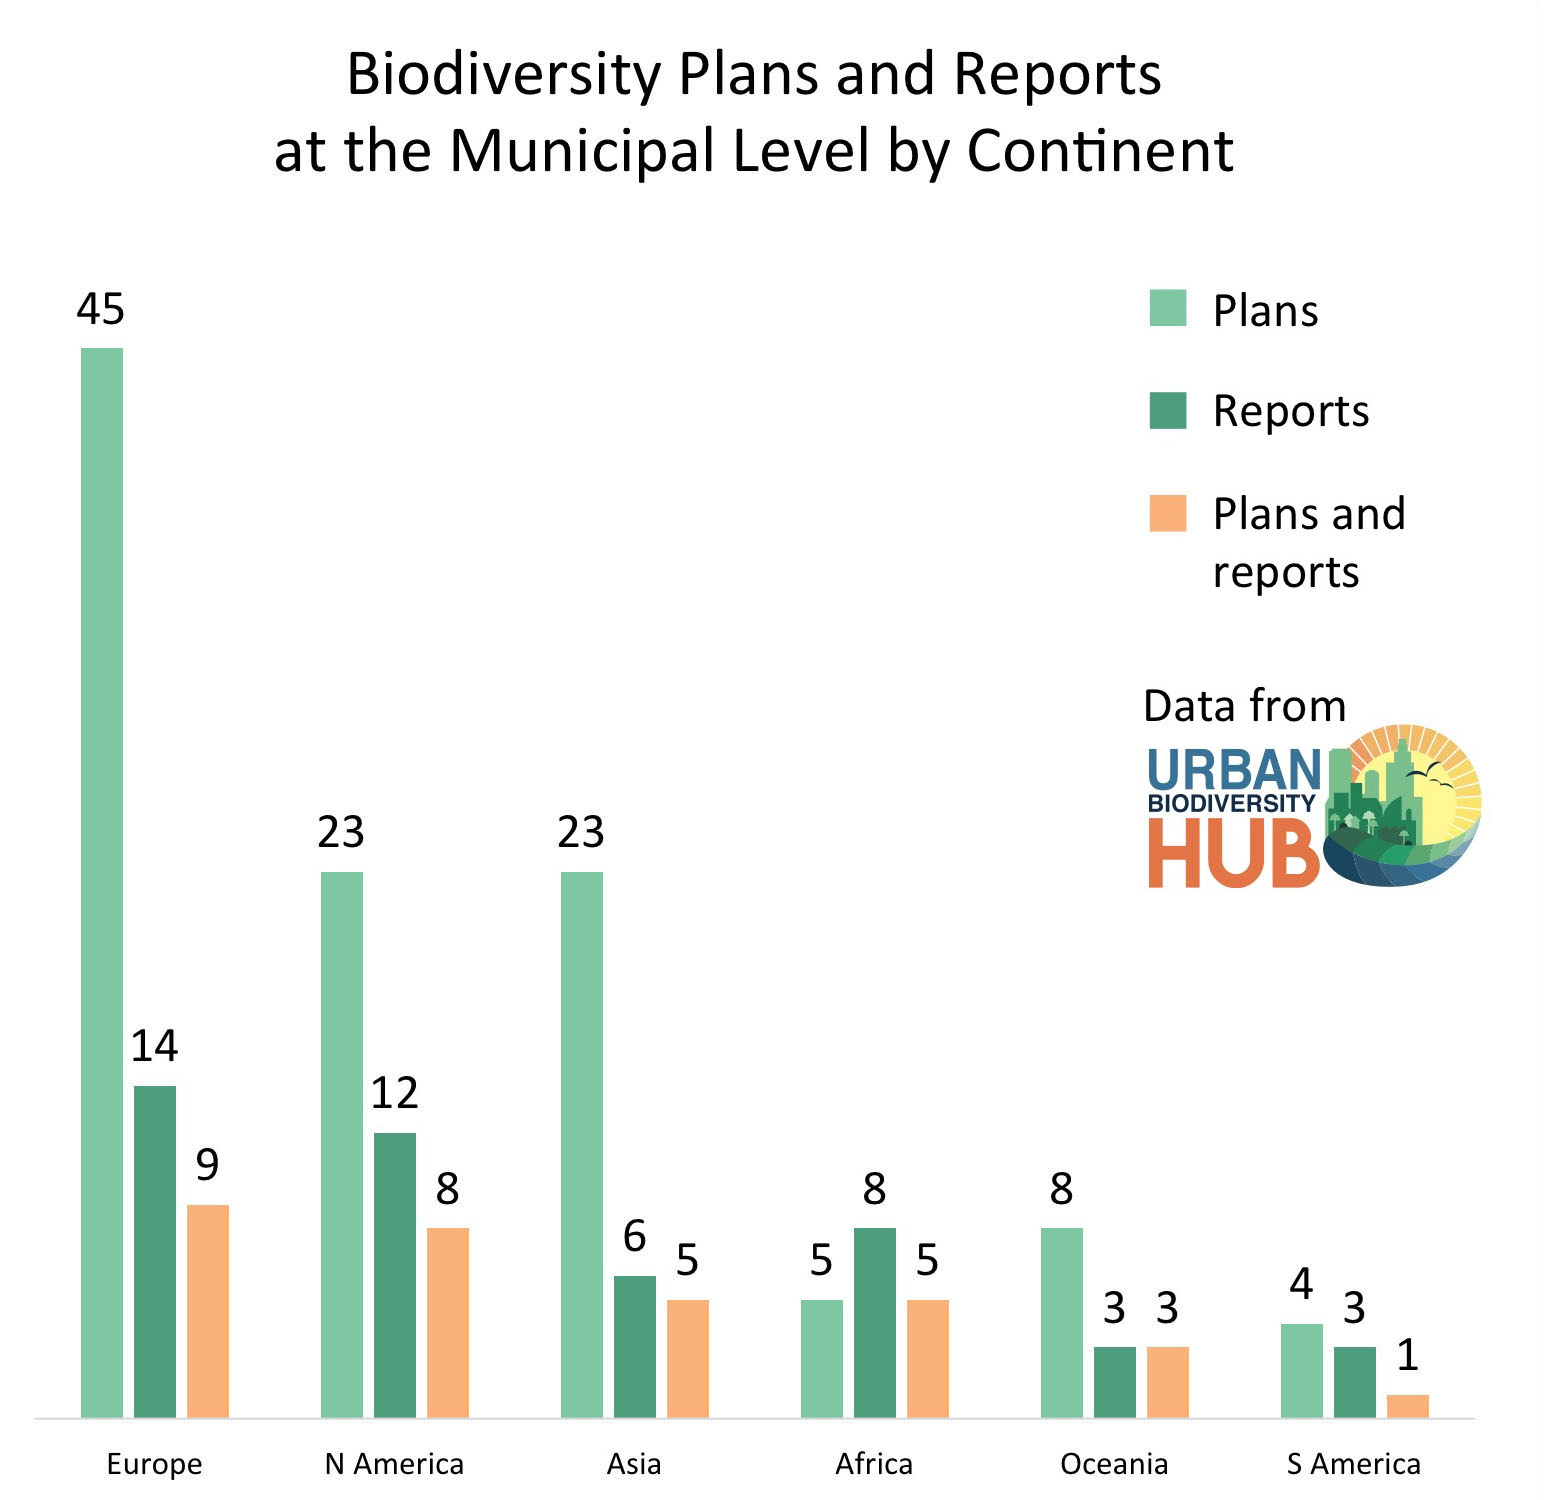 The Nature Of Cities An Idea Hive Green City Building Edible Plant Cell Project On Diagram 3d Poster Graph Number By Continent That Have Published Urban Biodiversity Plans And Or Reports A Plan Is Official Government